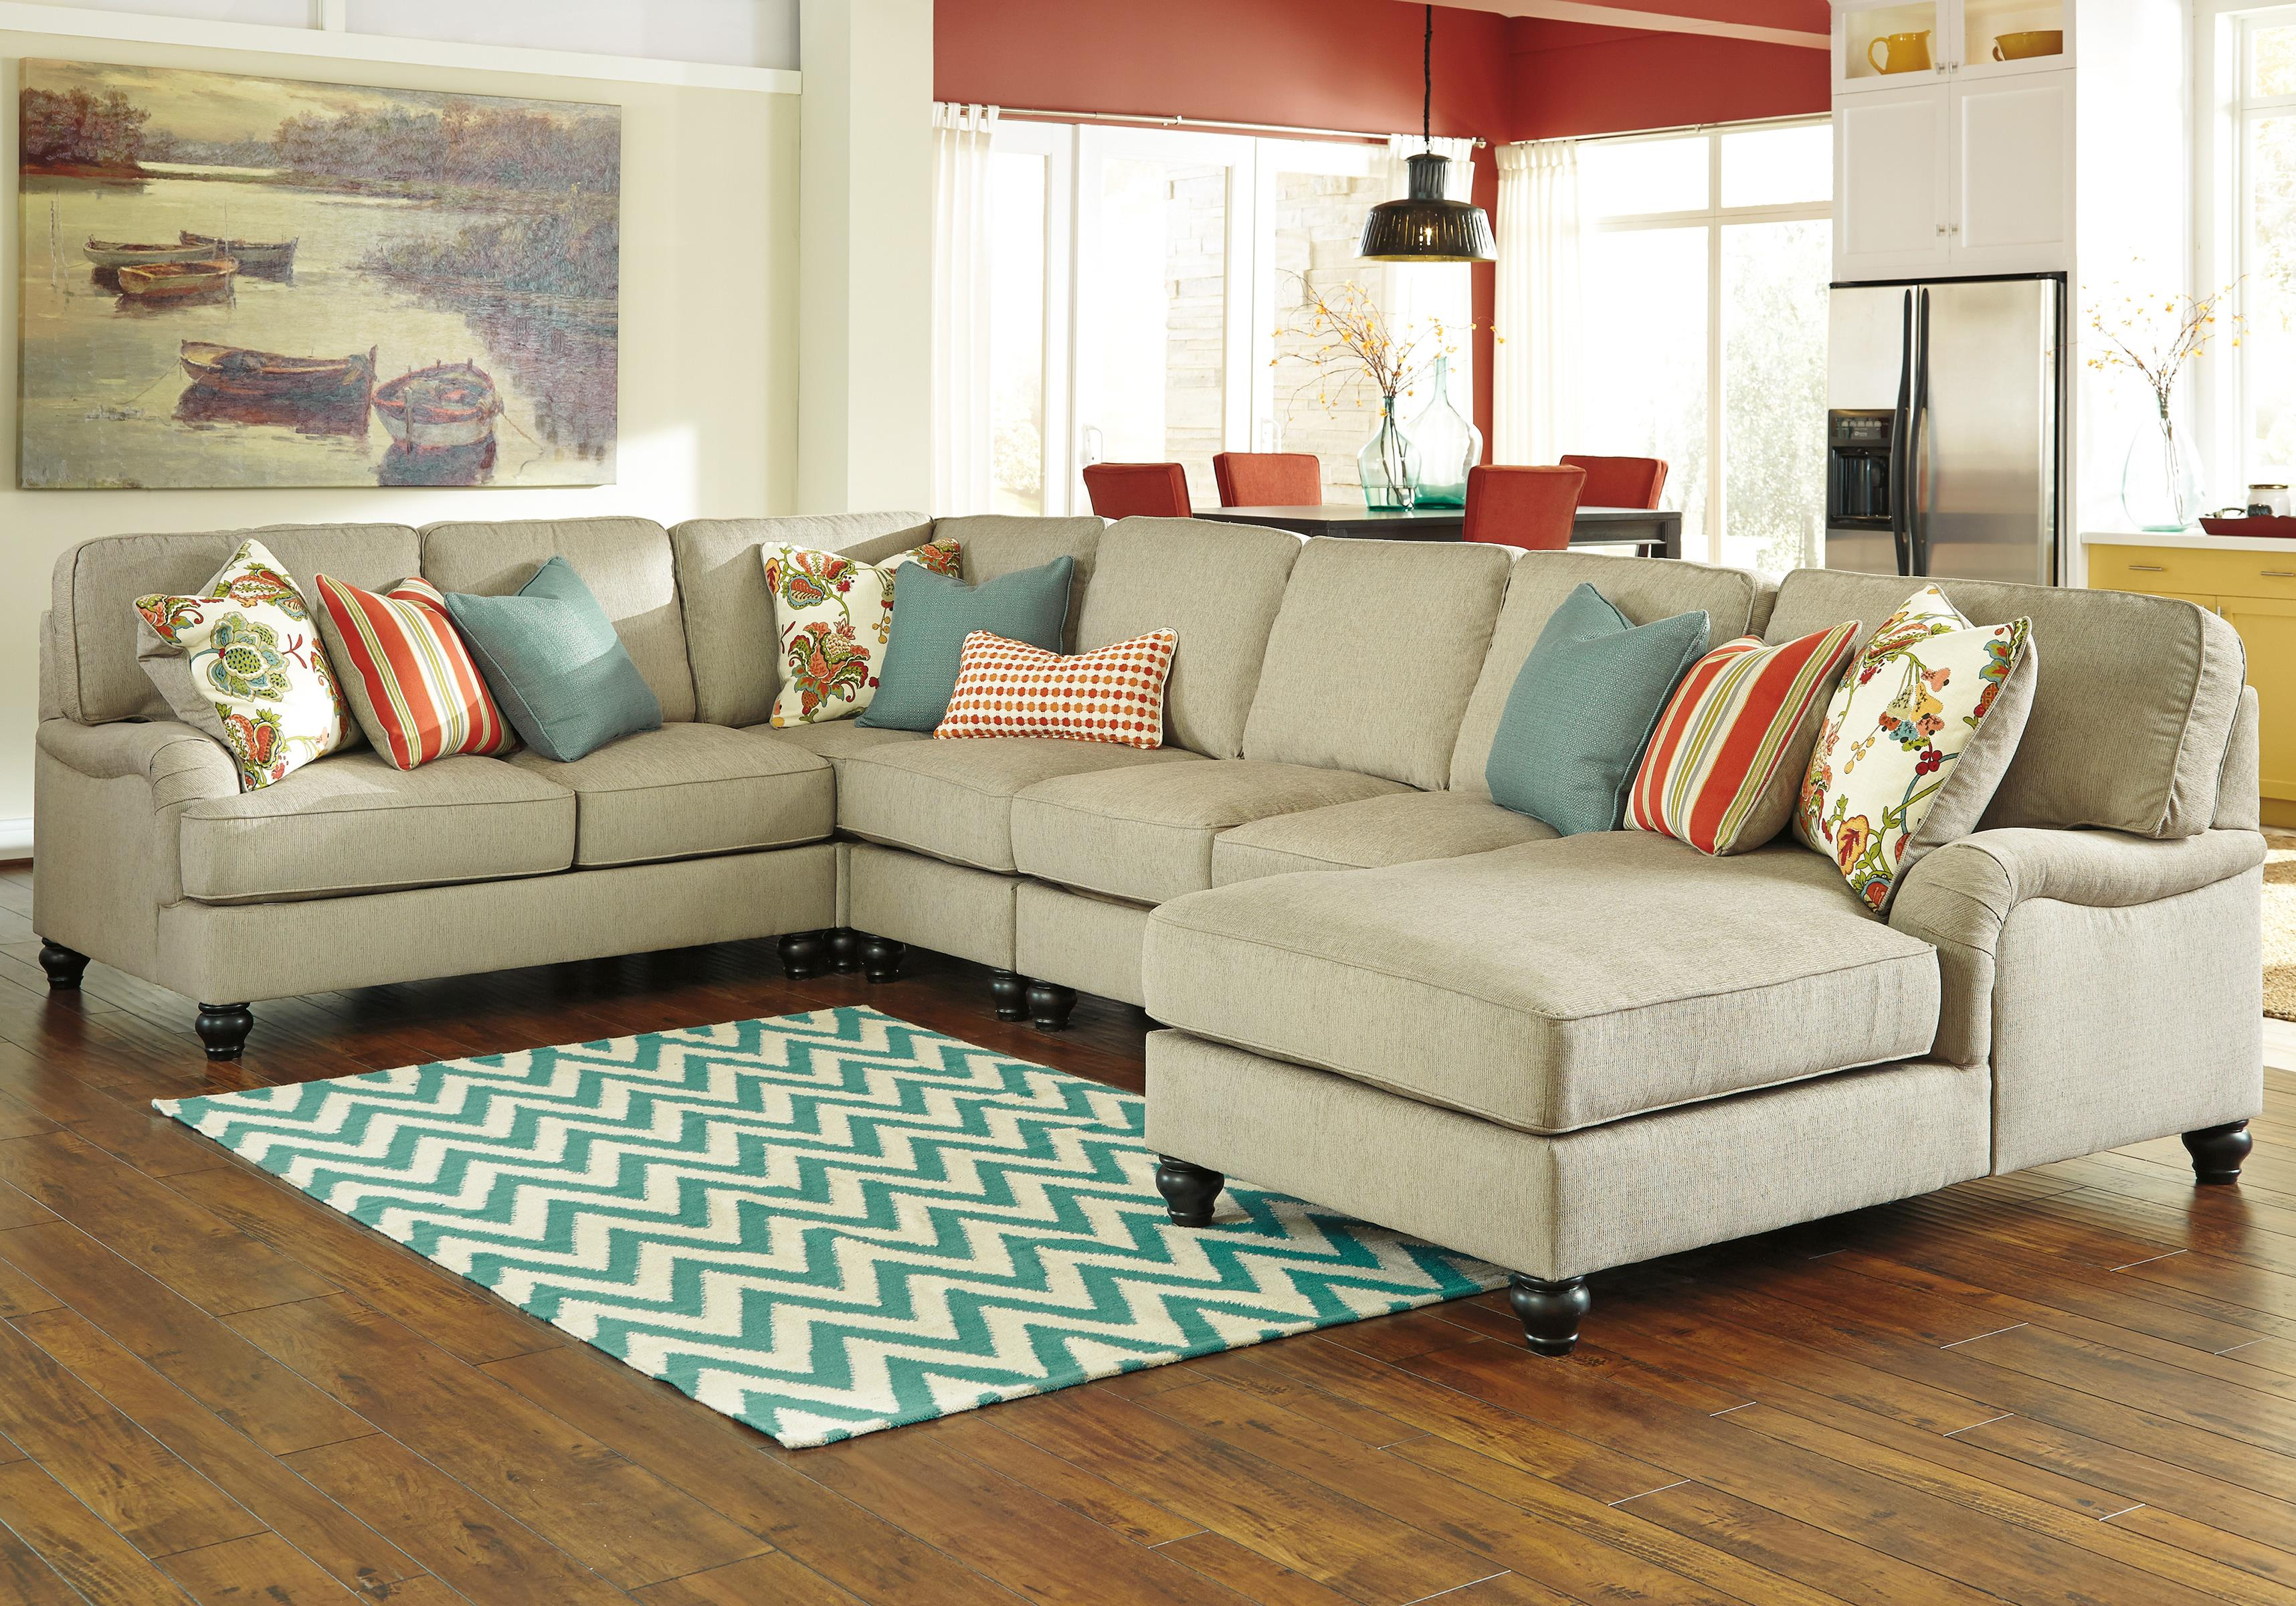 Ashley/Benchcraft Kerridon 5-Piece Sectional with Right Chaise - Item Number: 2630055+46+77+34+17